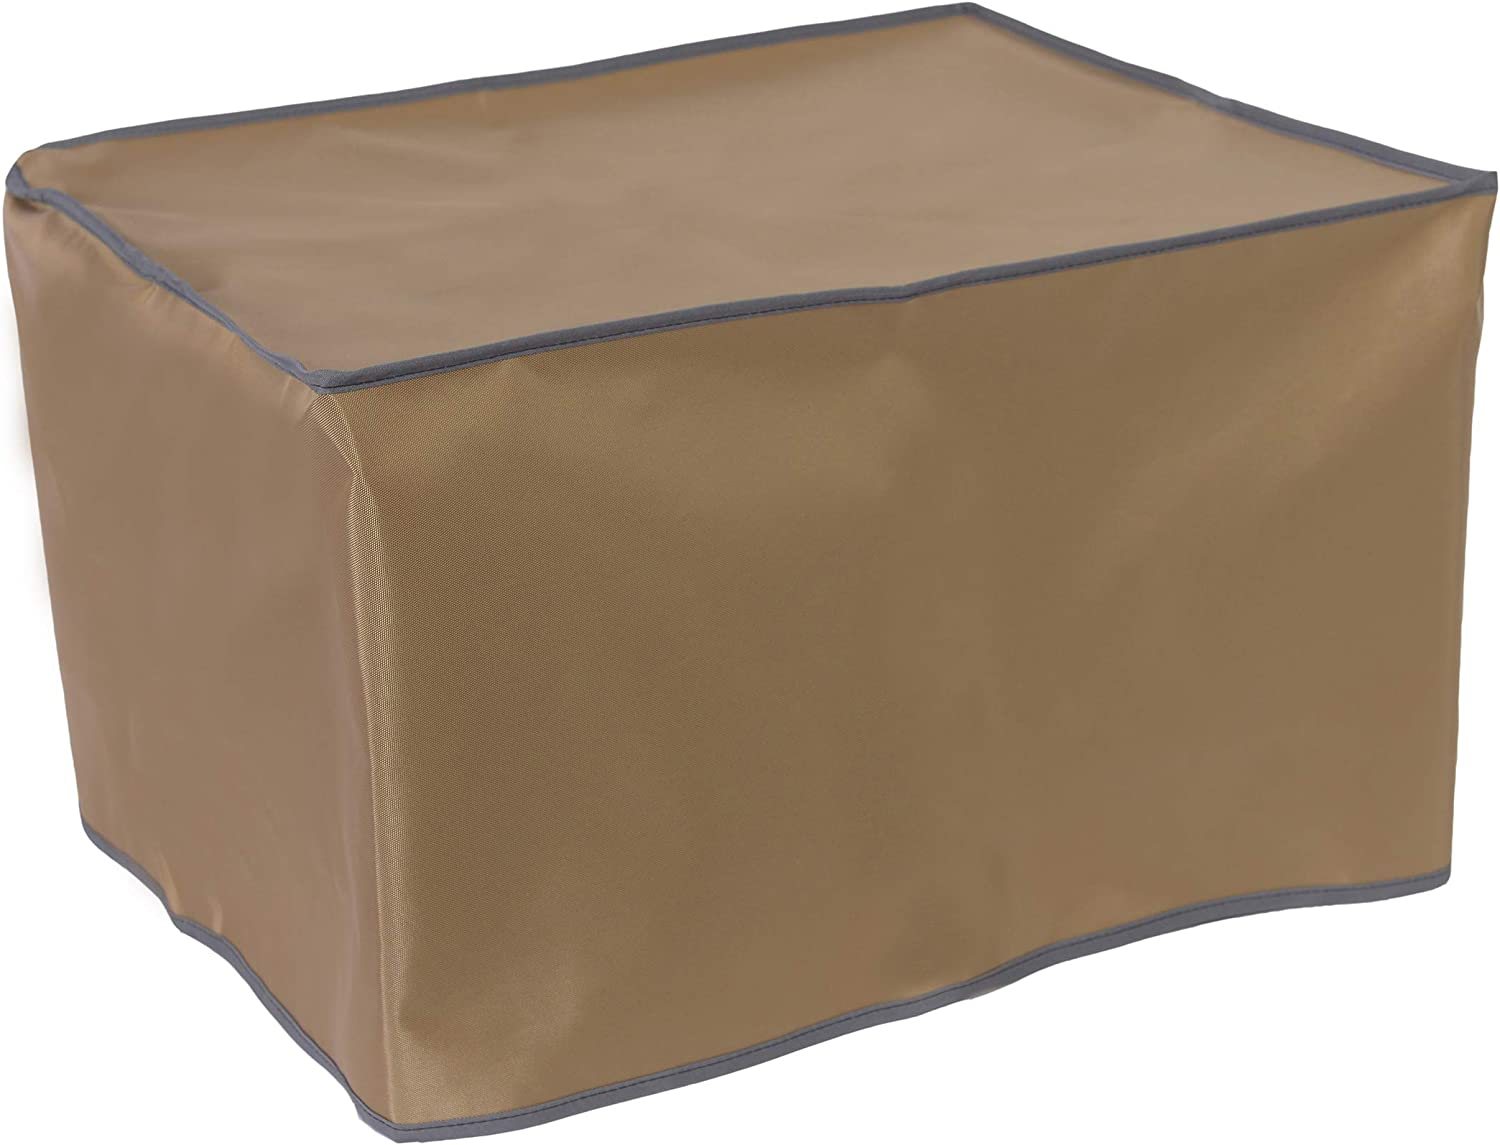 The Perfect Dust Cover, Tan Nylon Cover for HP Laserjet Pro 200 MFP M276 Laser Printer, Anti Static and Waterproof Cover Dimensions 17.7''W x 18.7''D x 16.3''H by The Perfect Dust Cover LLC